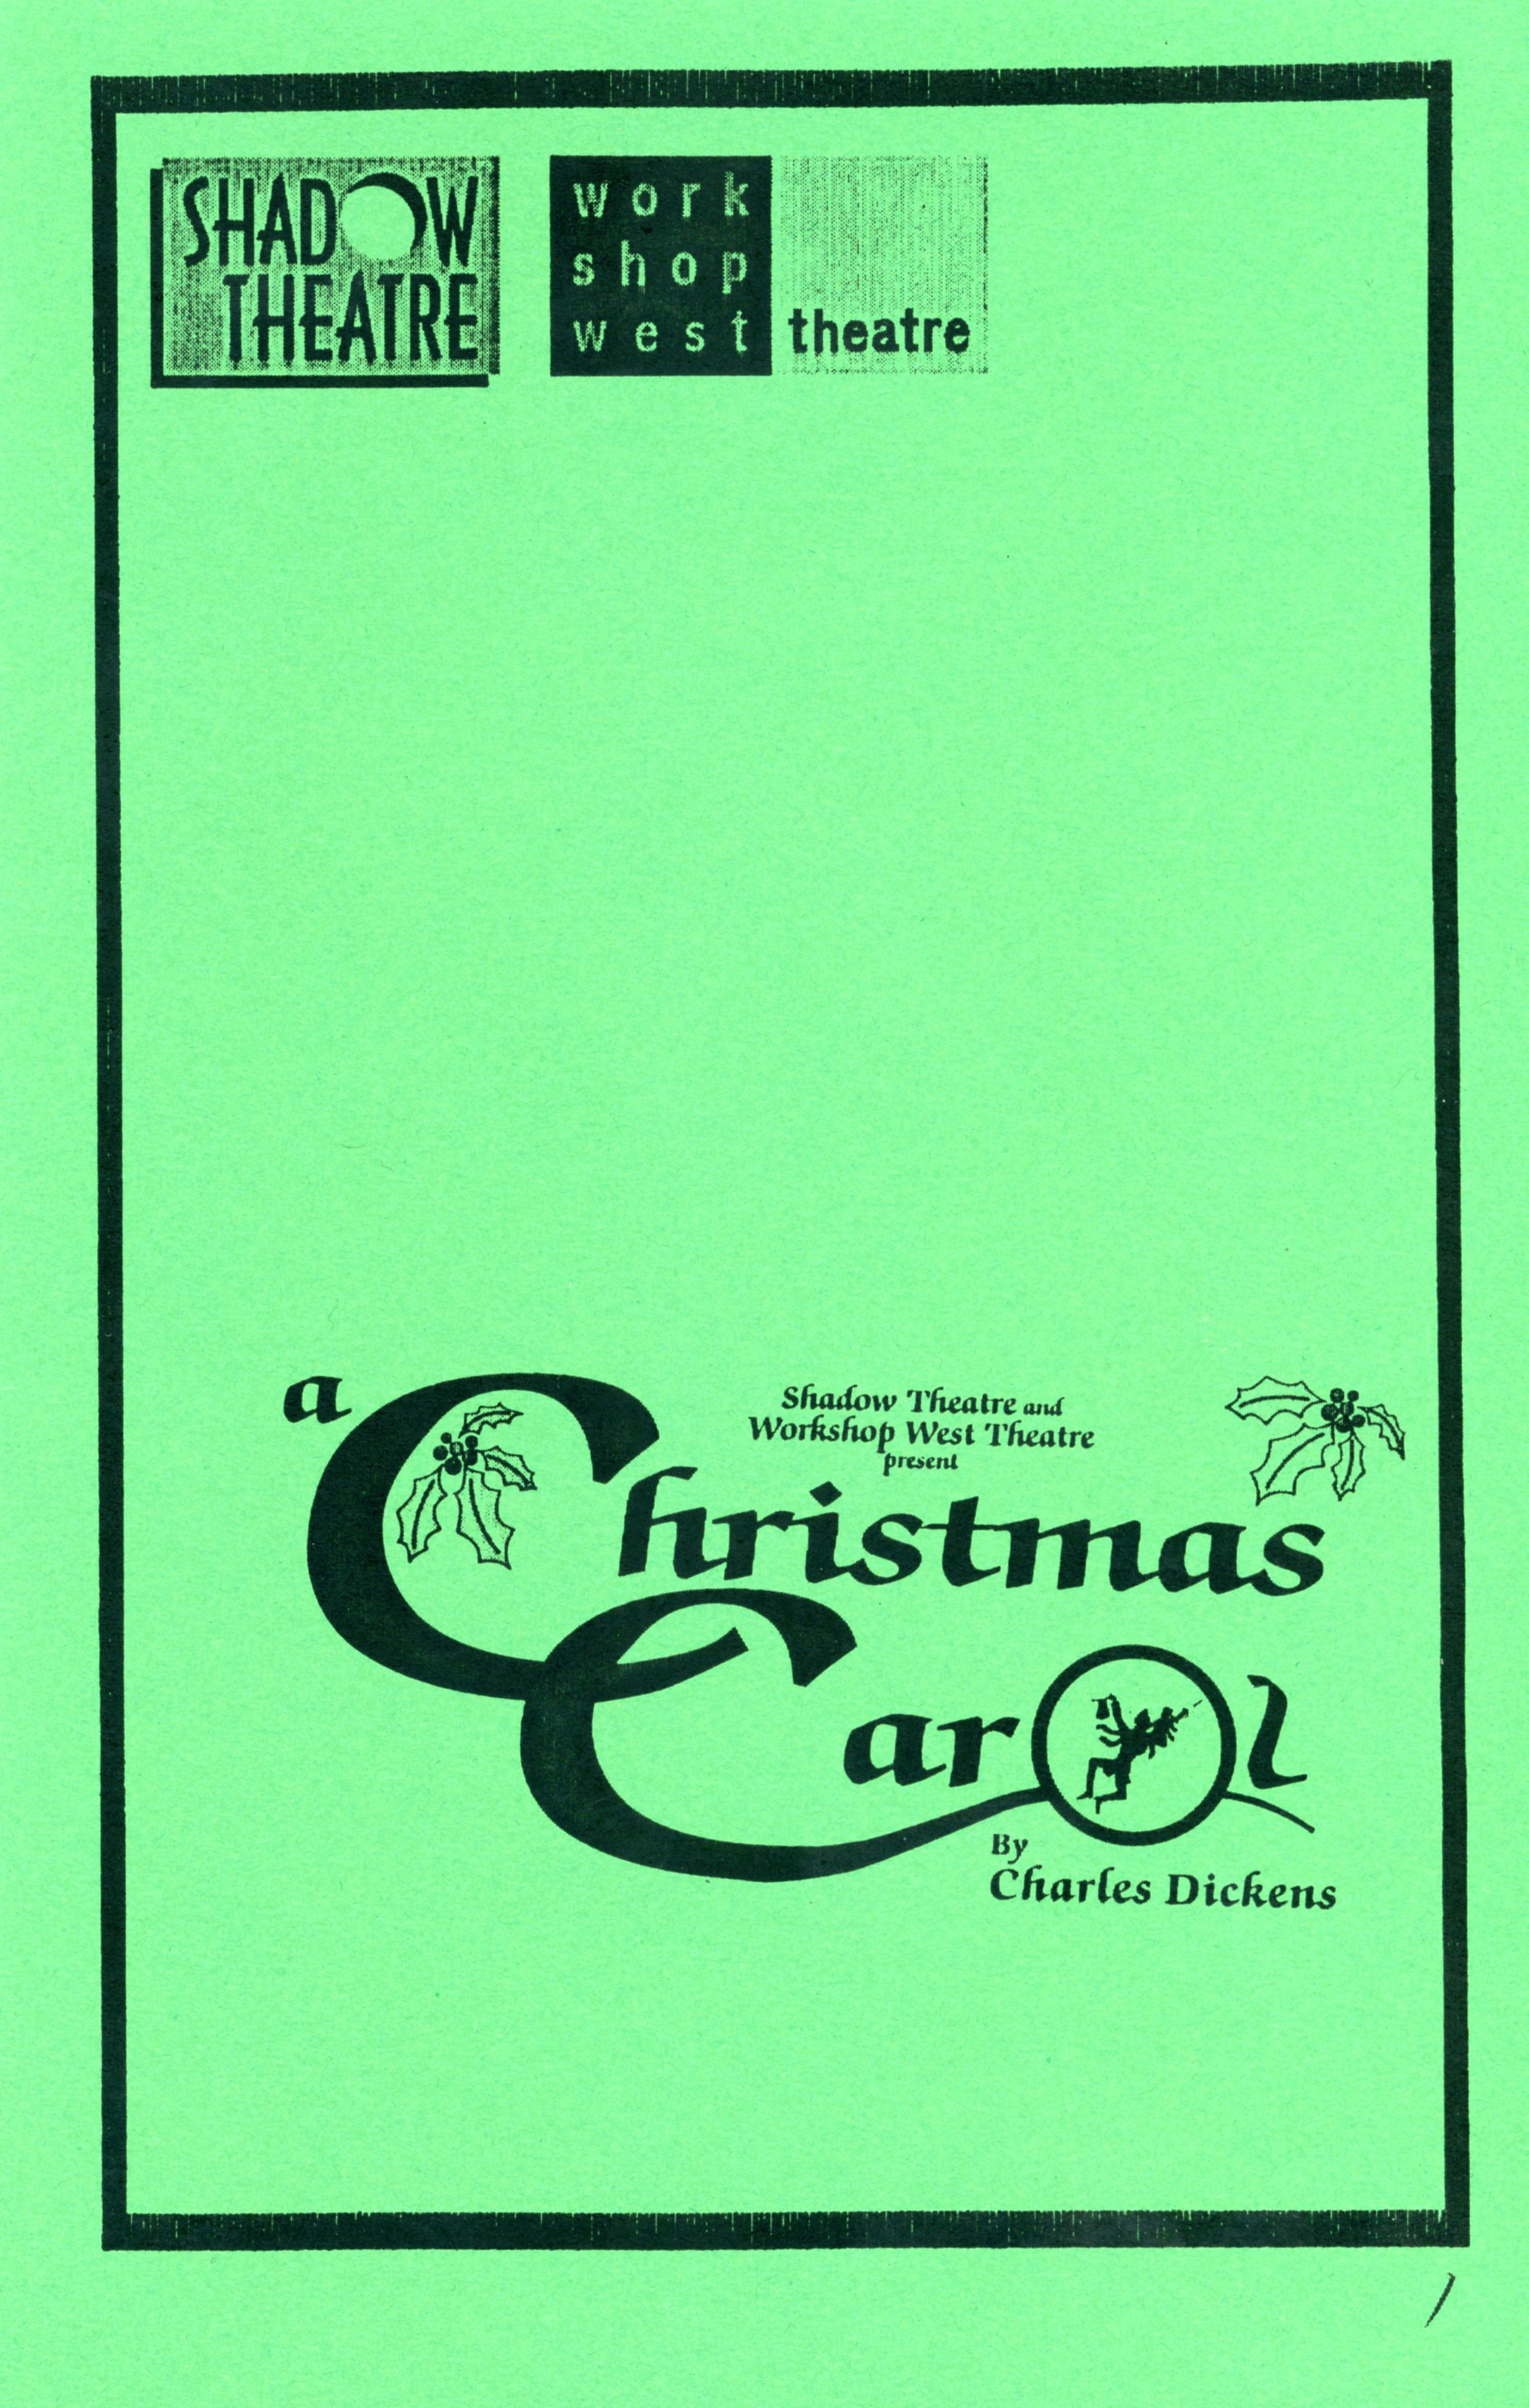 A Christmas Carol (December, 1998)-Production Cover_JPEG.jpg